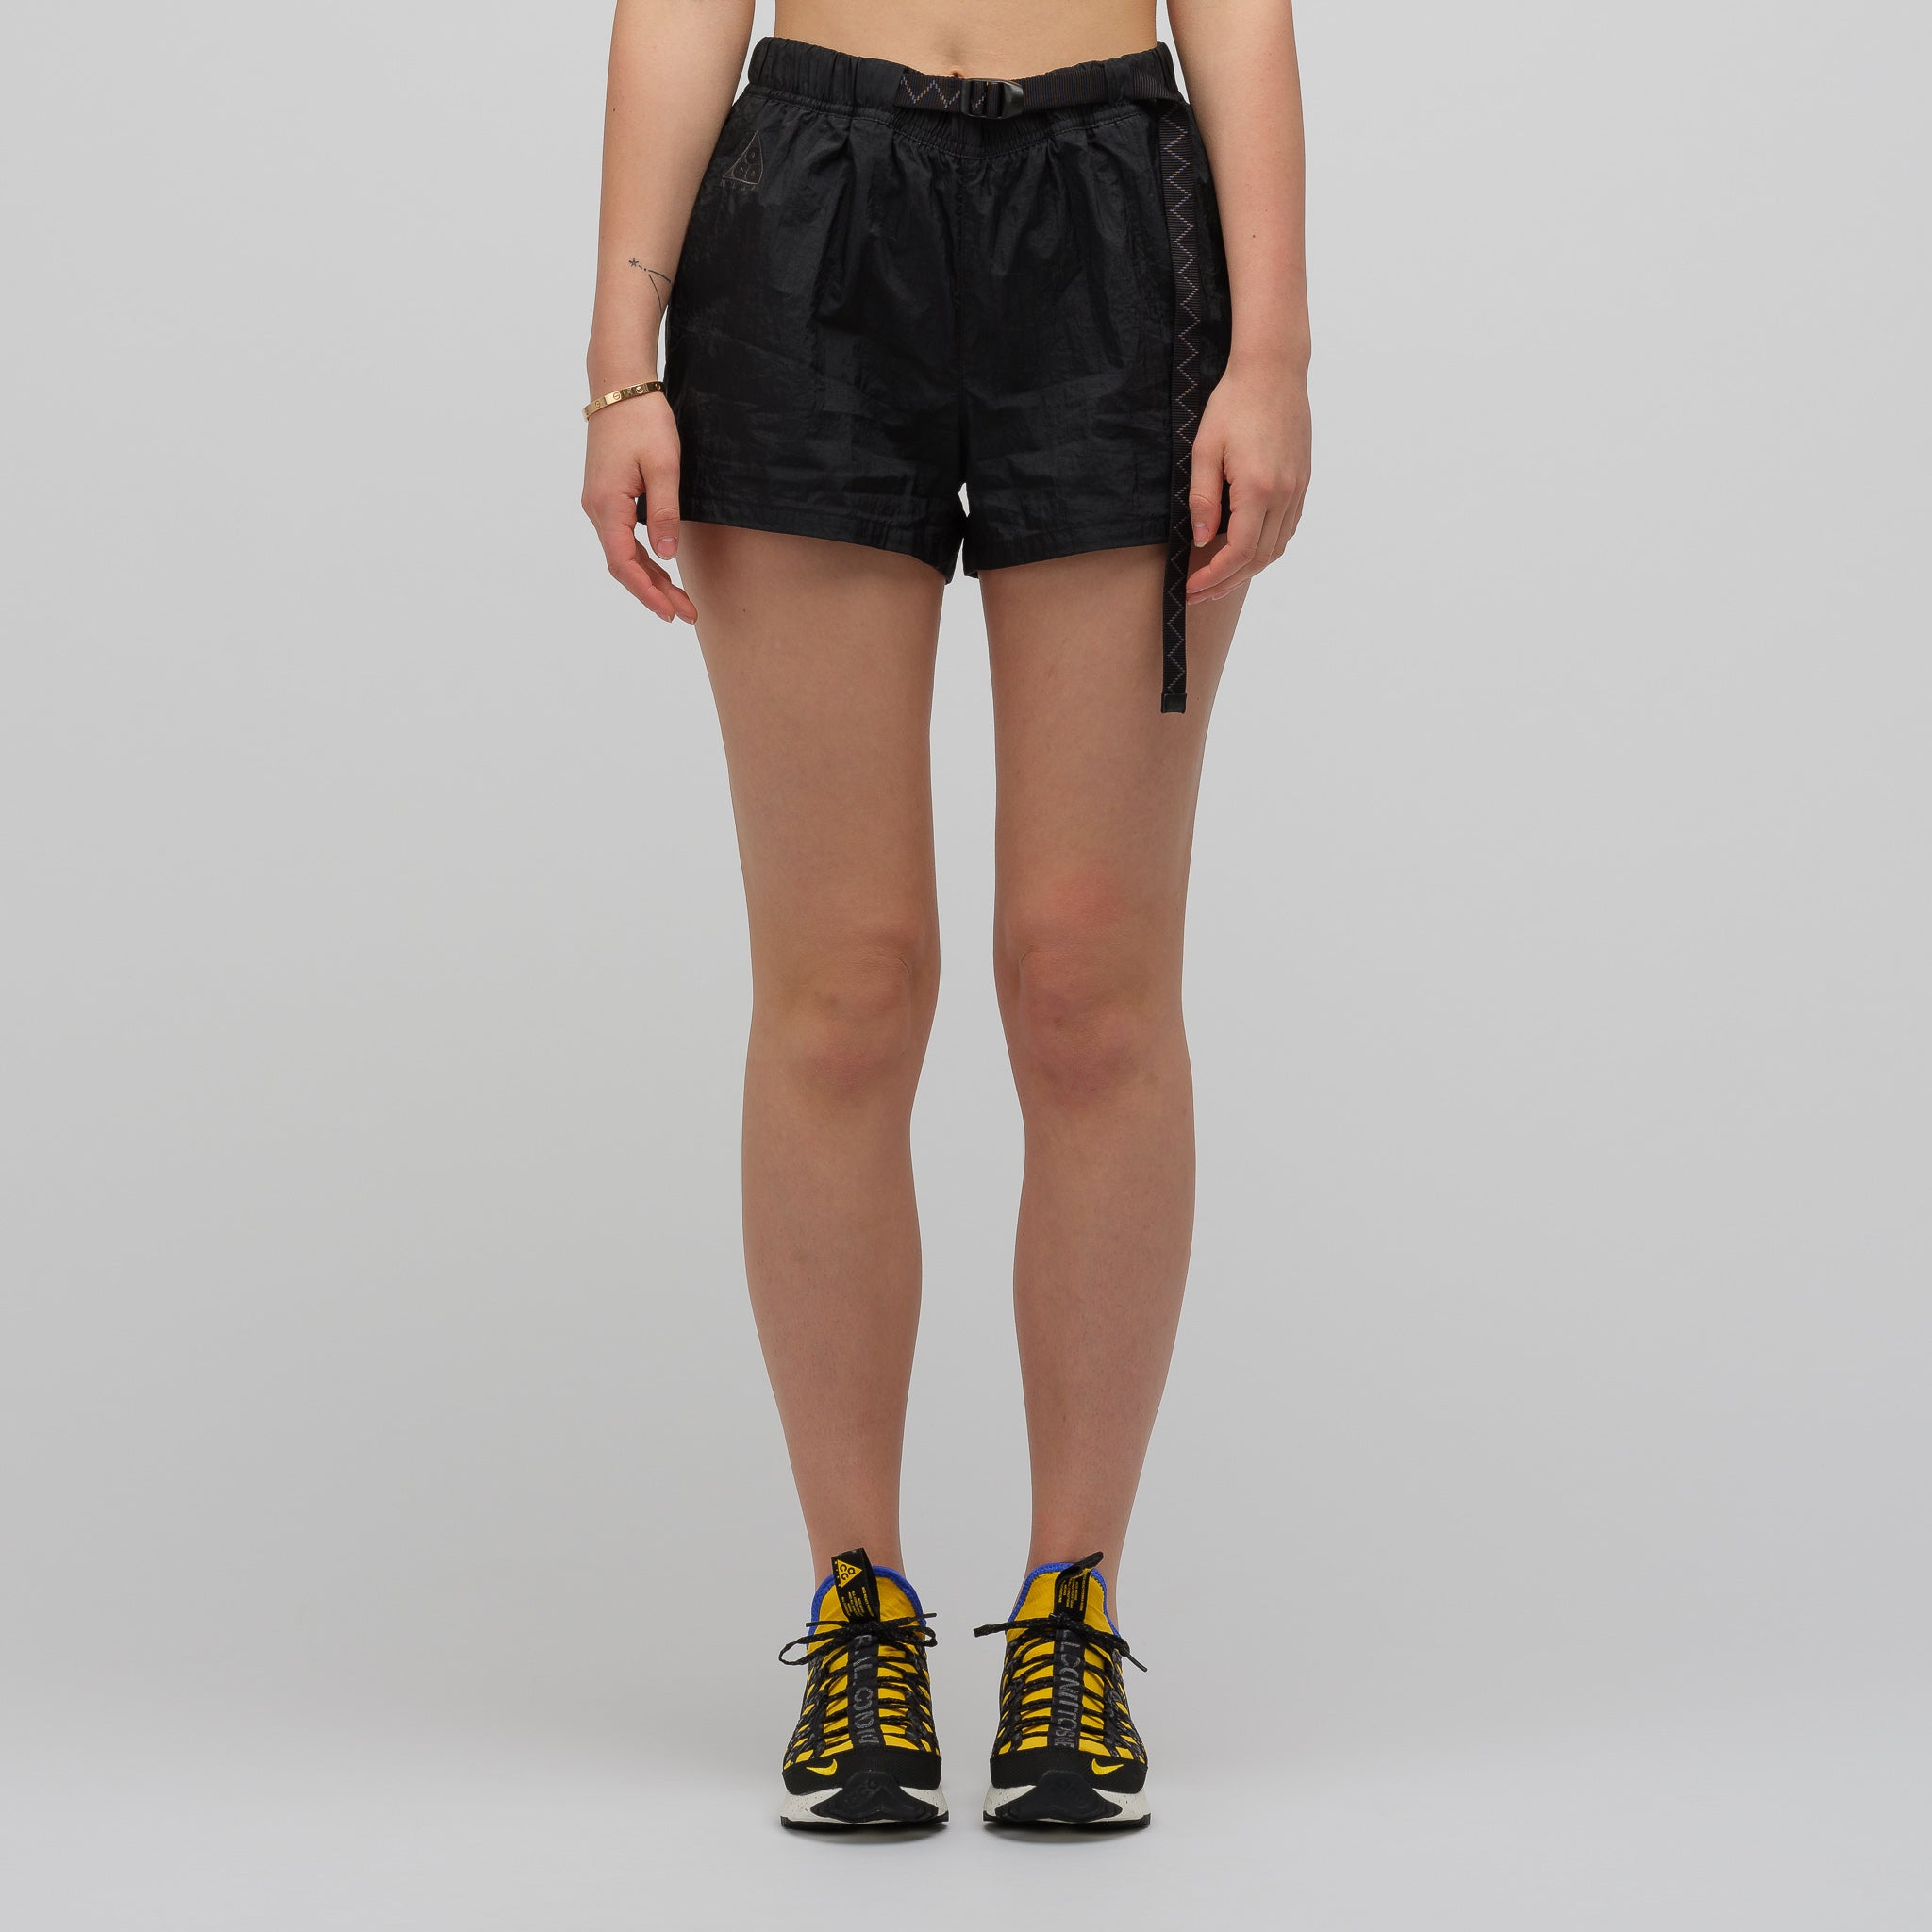 ACG Shorts in Black/Anthracite